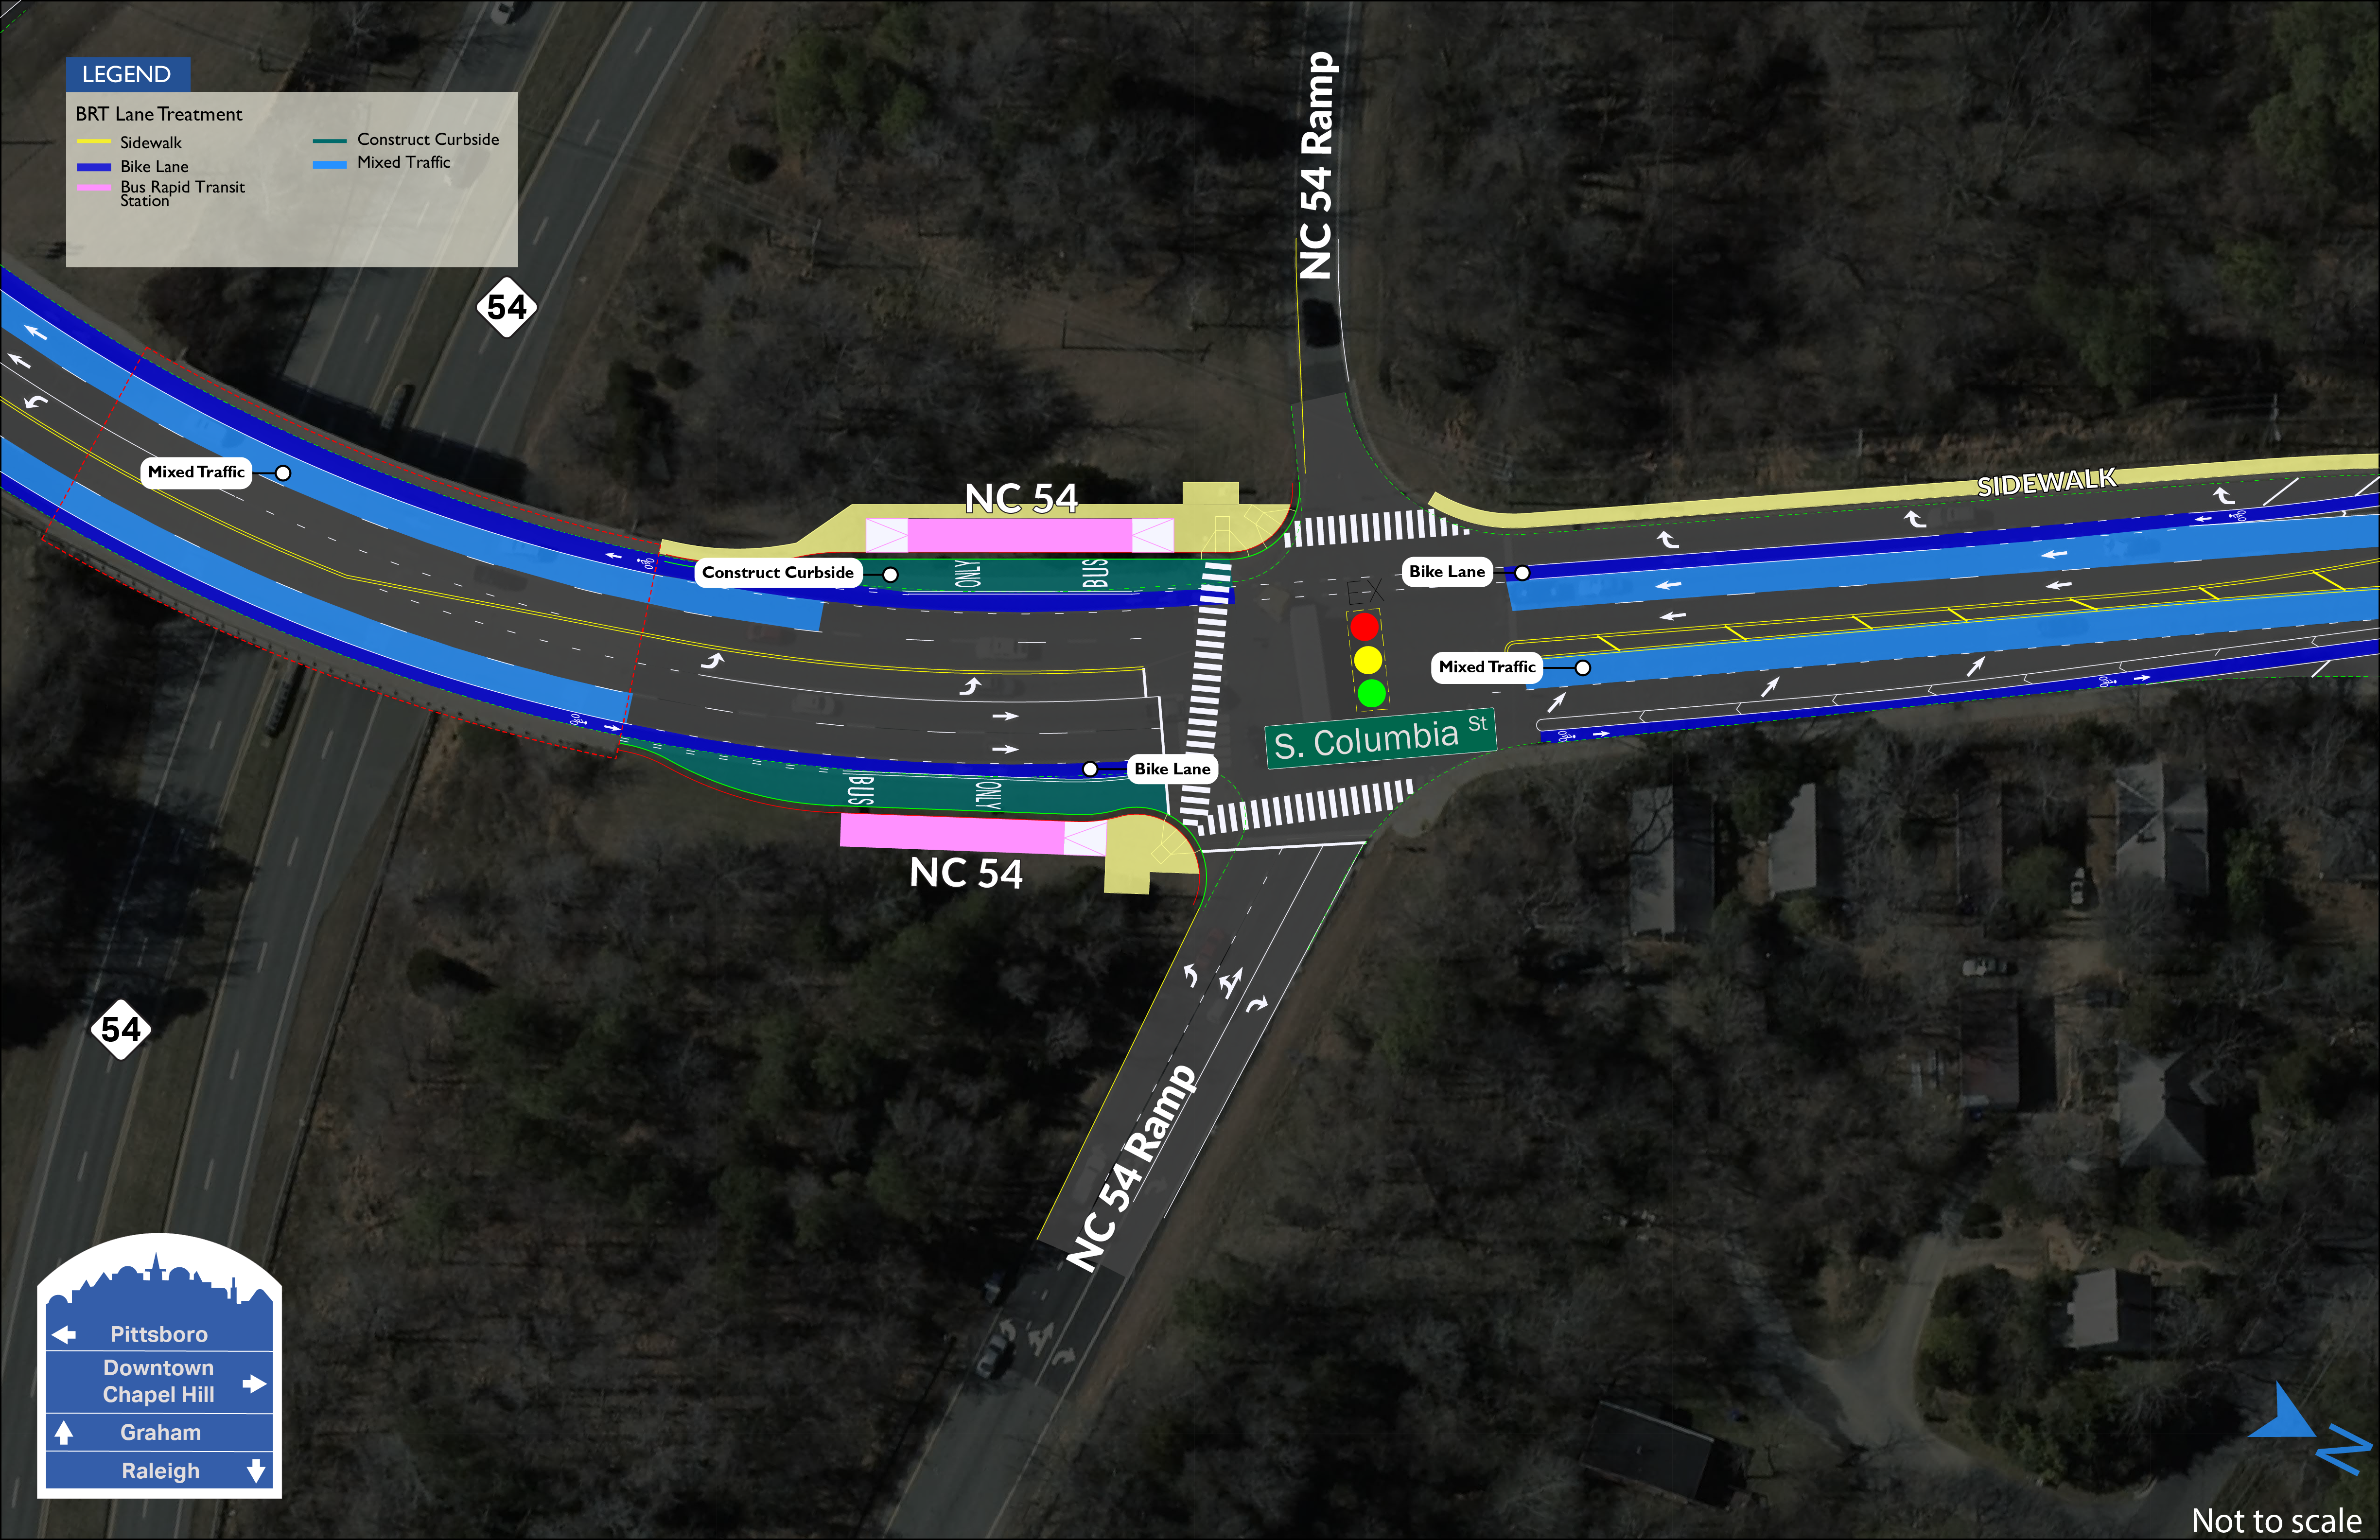 NC 54 BRT map showing two stations on both sides of S. Columbia Street between NC 54 and the on/off ramps.